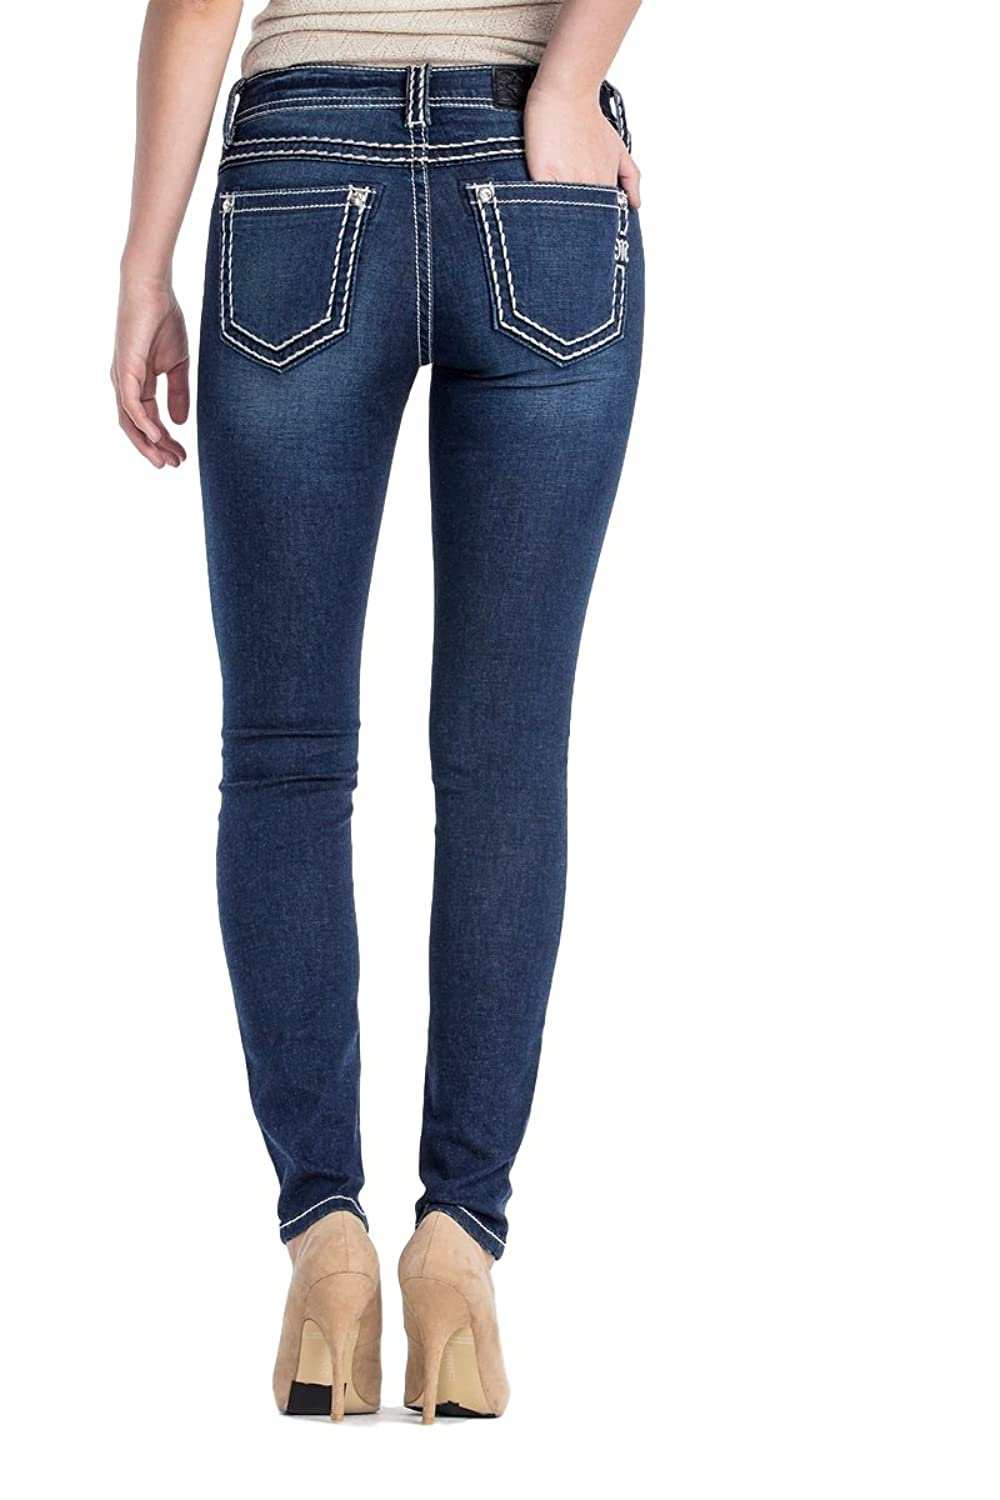 Miss Me Jeans Women's Fever Stitch Super Skinny Stretch Thick White Stitching Mid-Rise